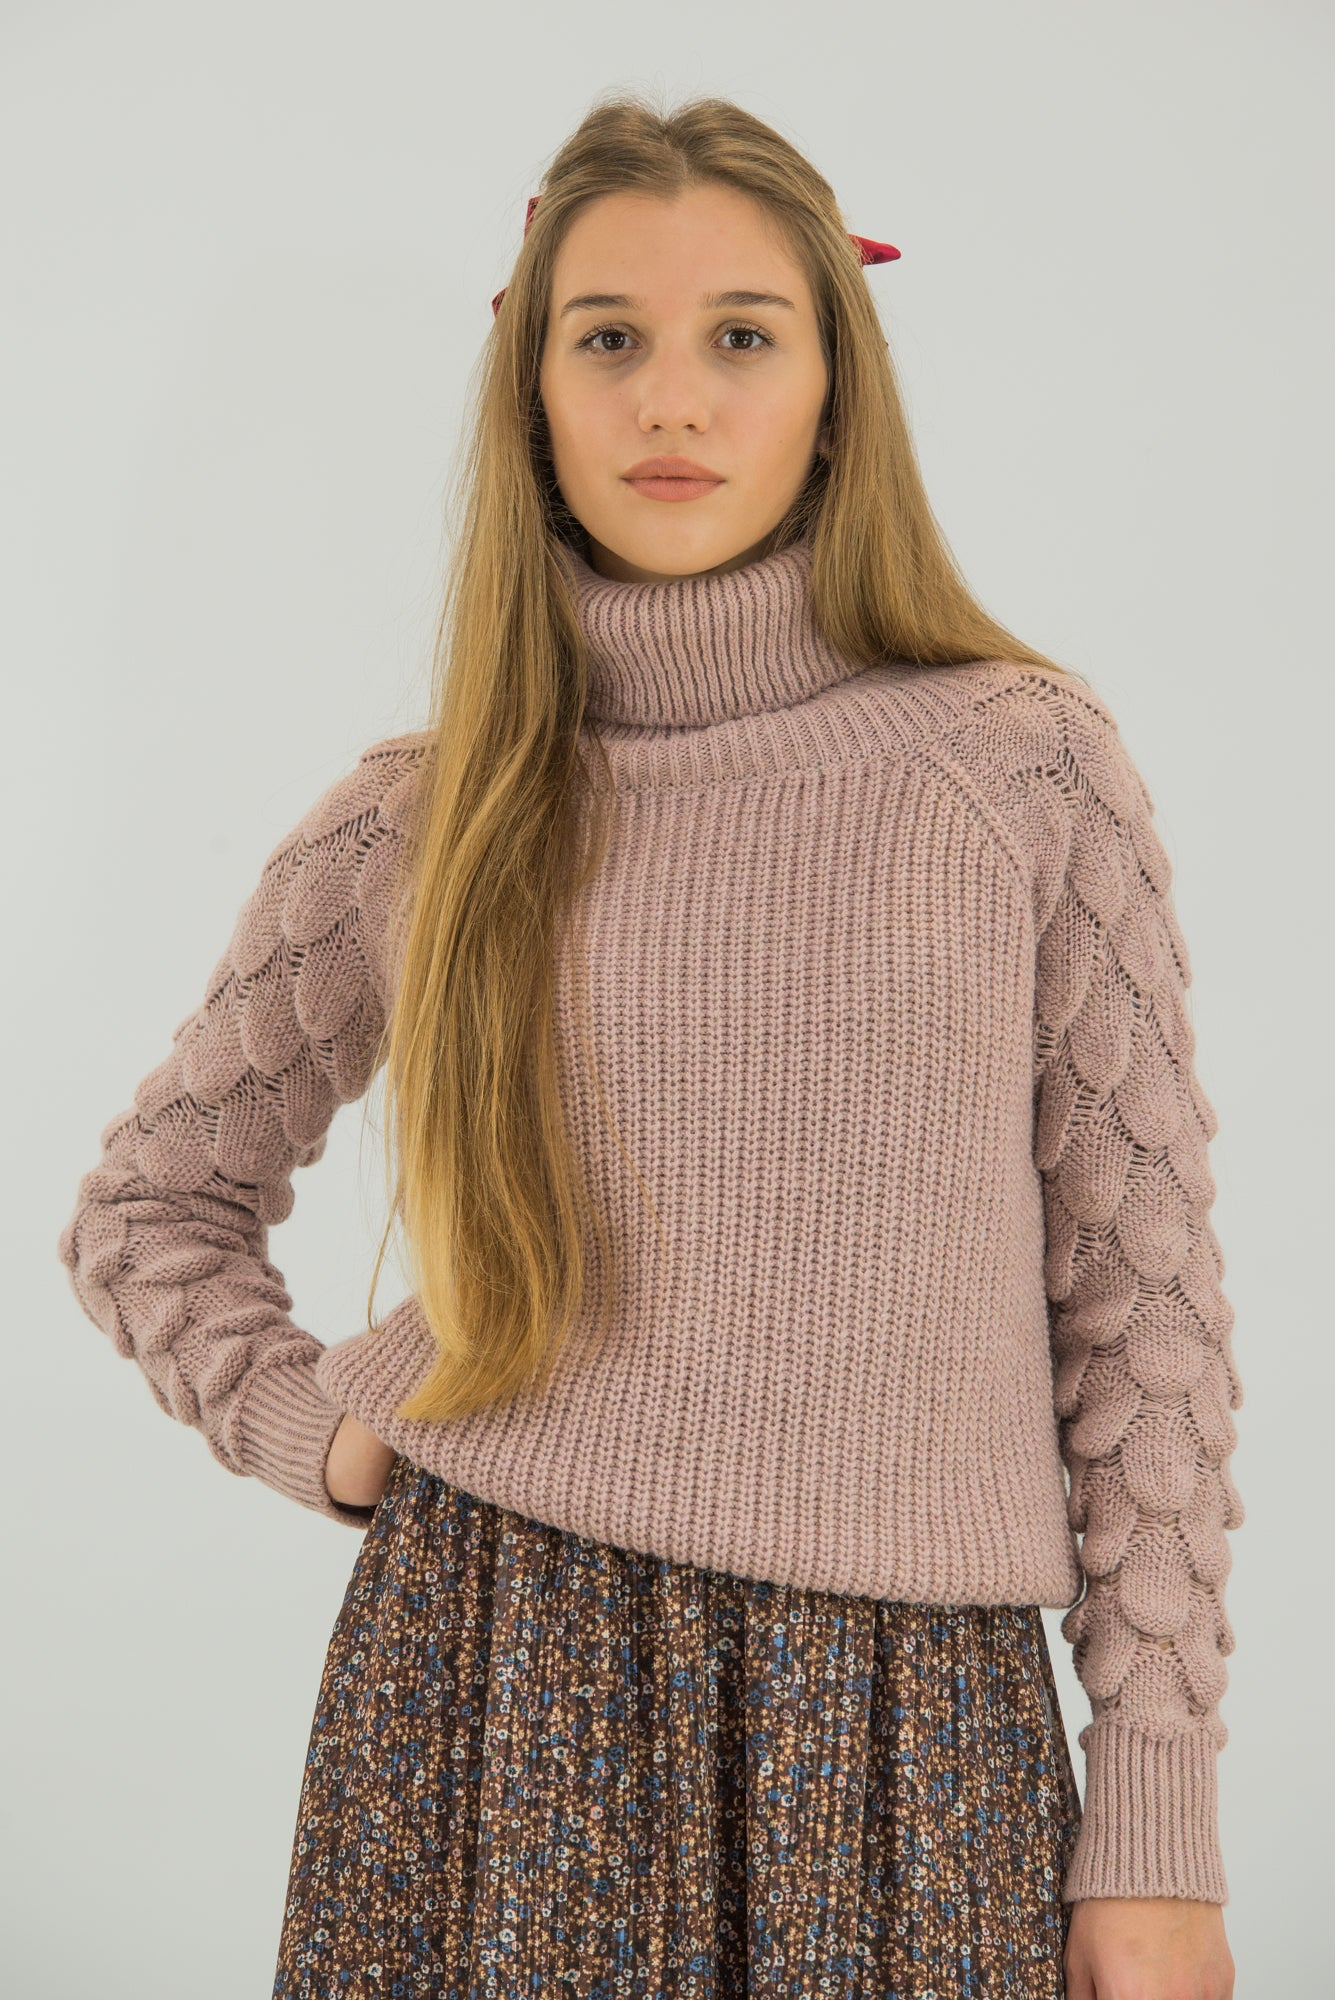 Turtleneck Sweater Mermaid Patterned Sleeves